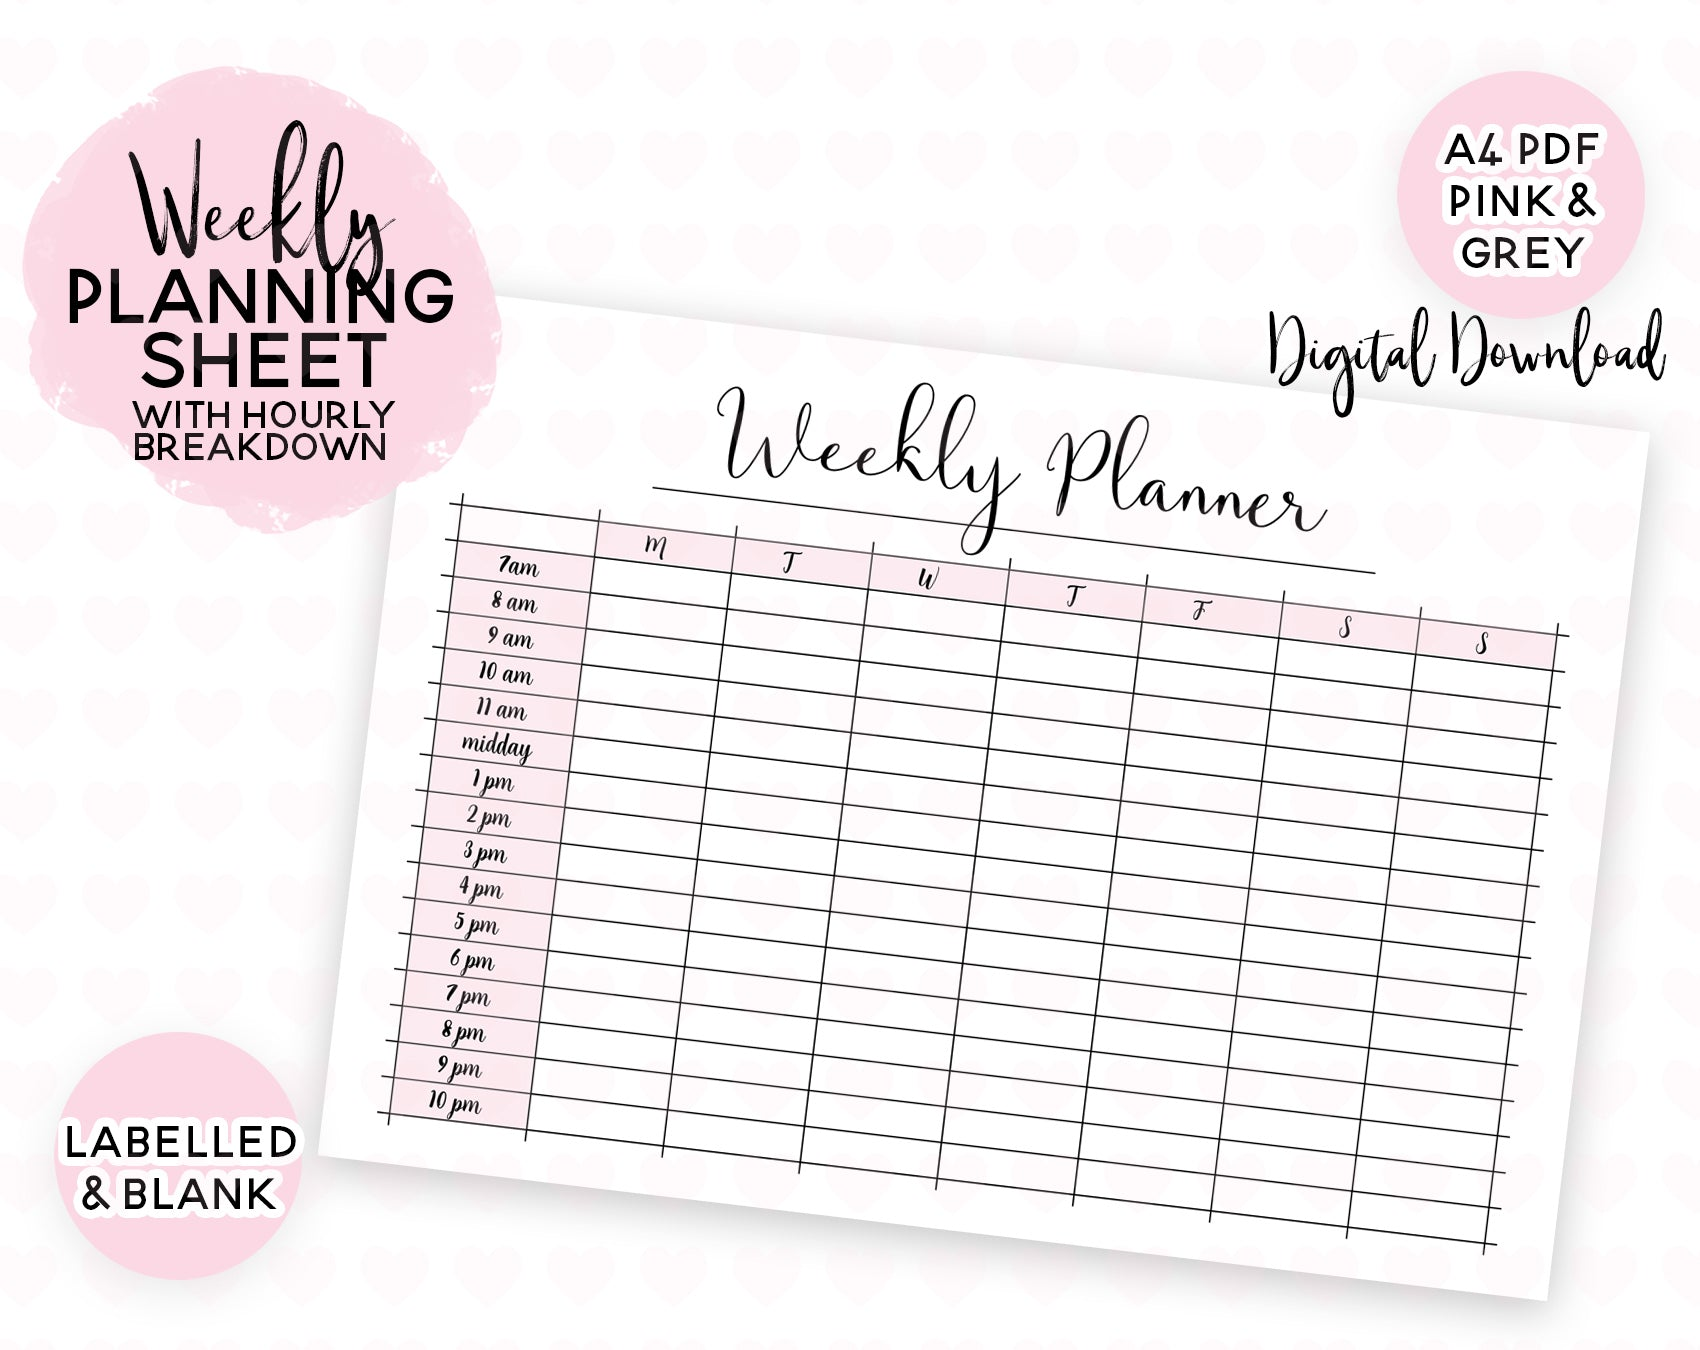 picture relating to Cute Hourly Planner identify Weekly Building Sheet With Hourly Breakdown - Adorable Prints